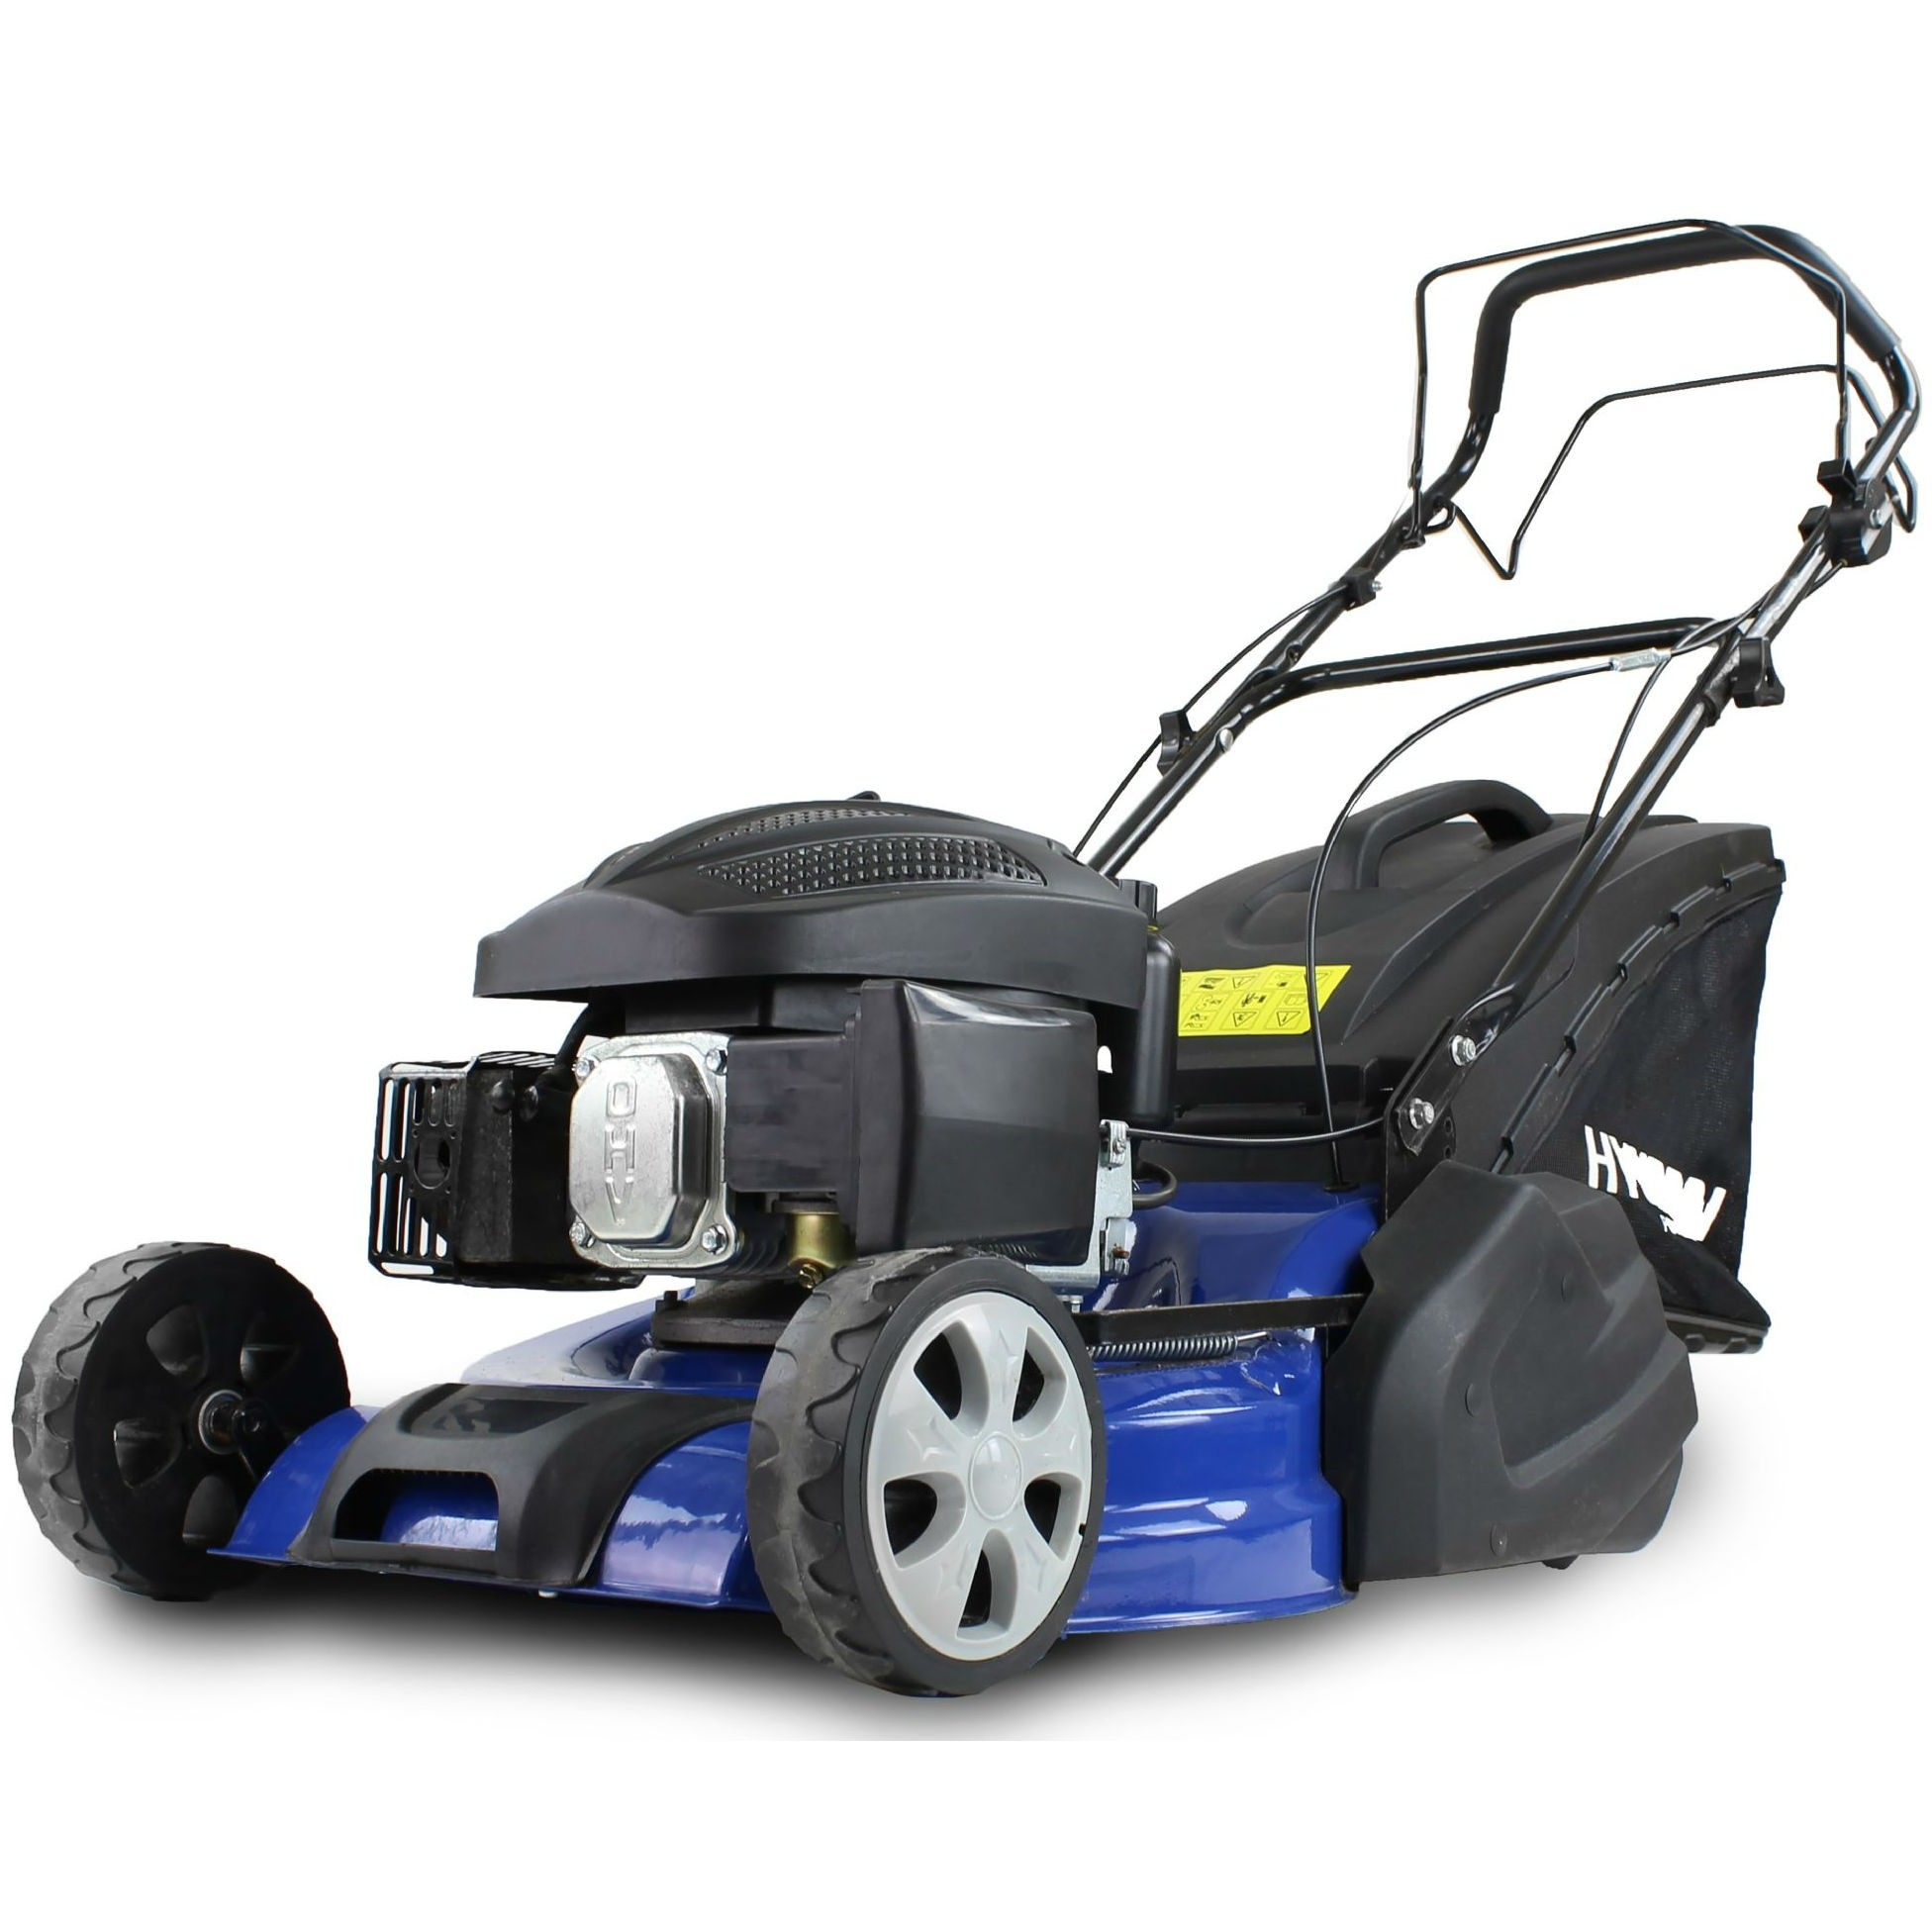 Hyundai HY-M460SPR Self-Propelled Petrol Roller Lawnmower